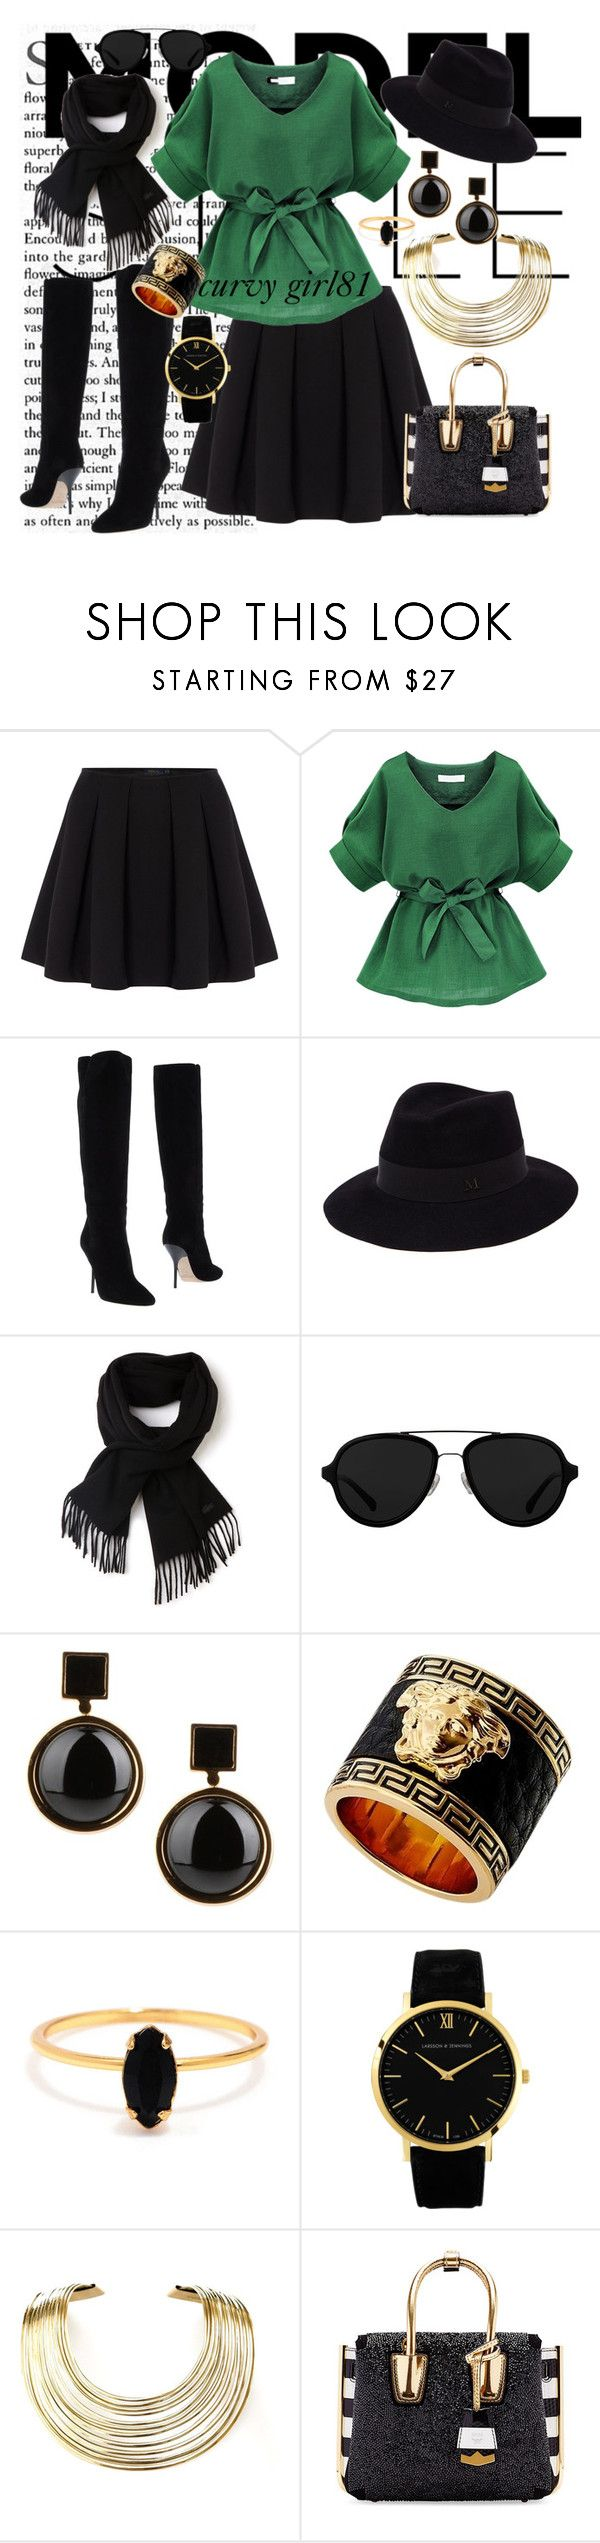 """Curvy green"" by pretty-girl81 on Polyvore featuring moda, Polo Ralph Lauren, Jimmy Choo, Maison Michel, Lacoste, 3.1 Phillip Lim, Marc by Marc Jacobs, Versace, Bing Bang e Larsson & Jennings"